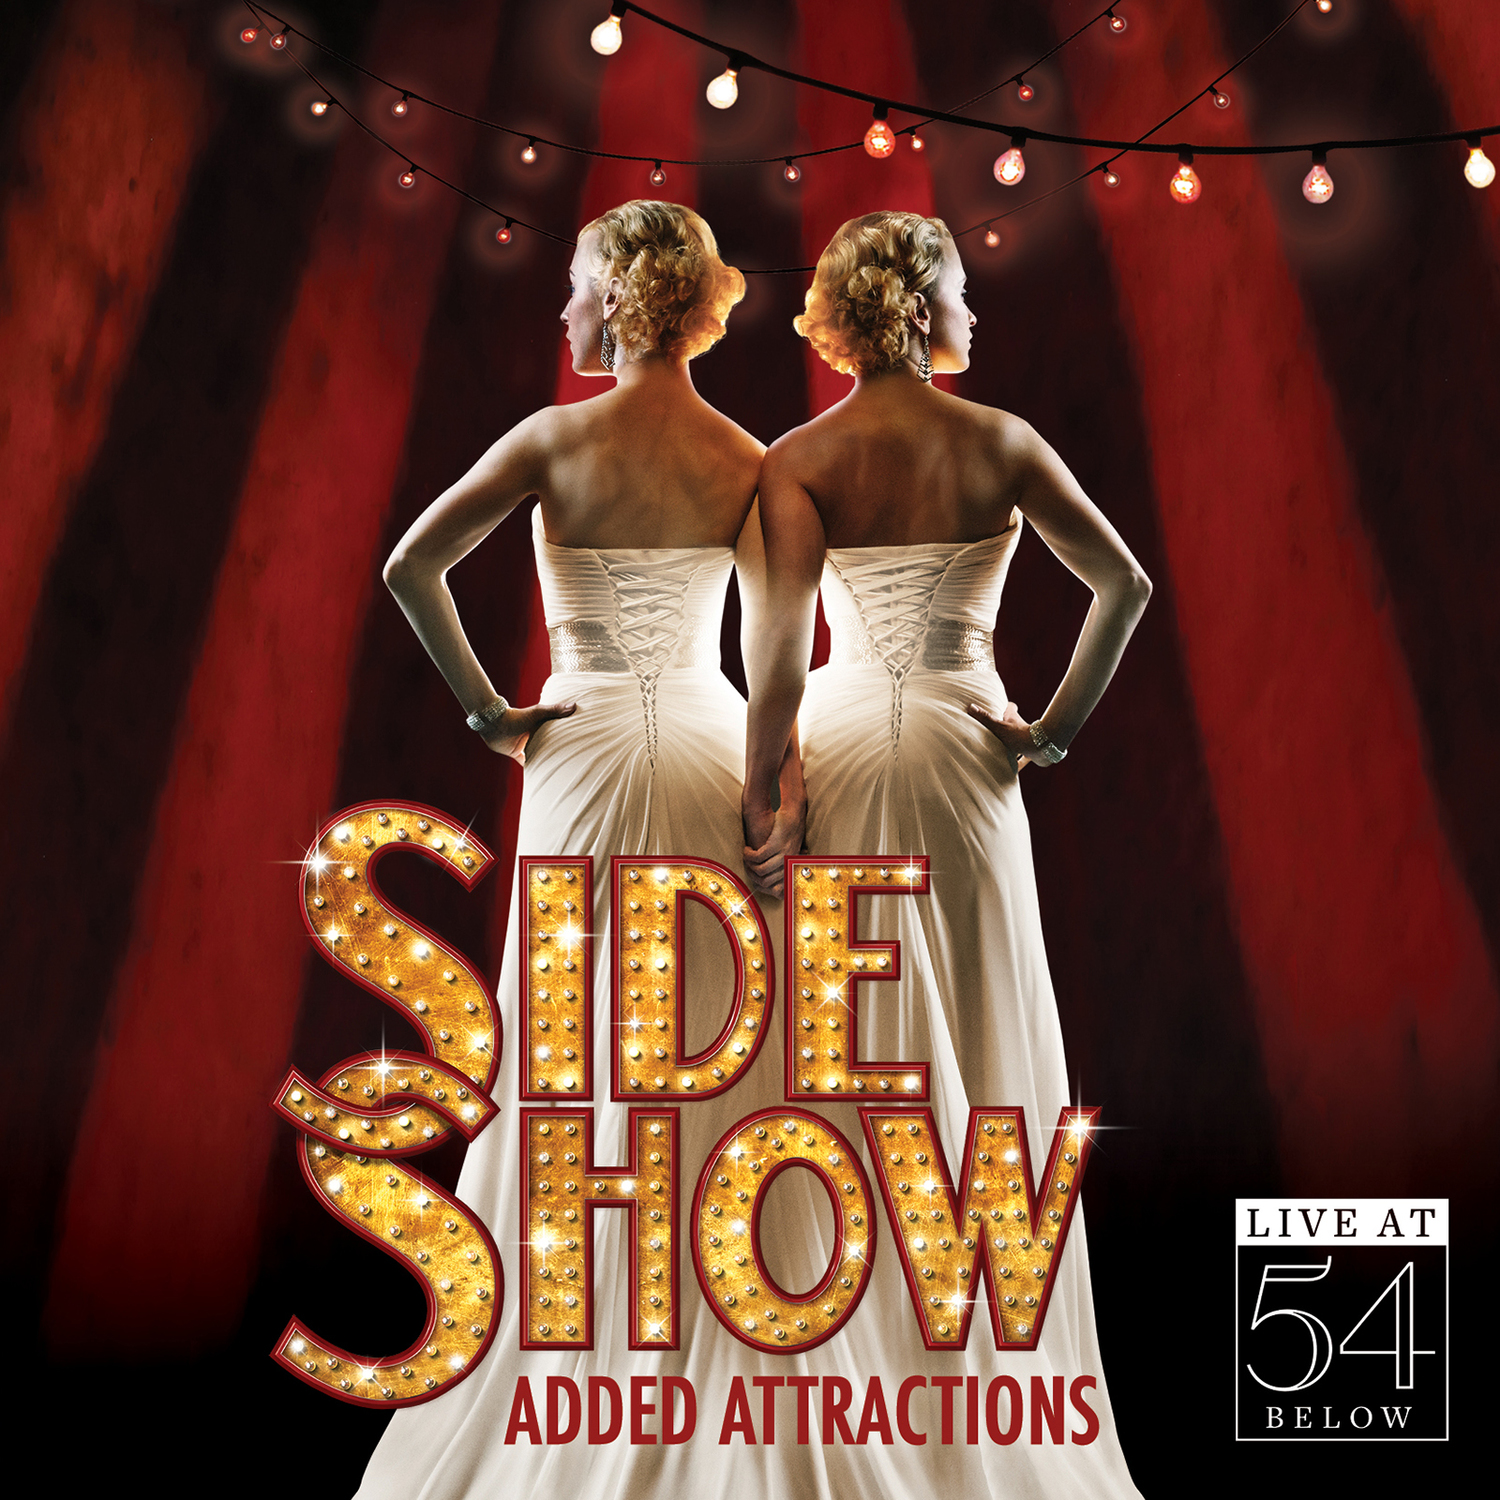 Side Show - Added Attractions: Live at 54 Below